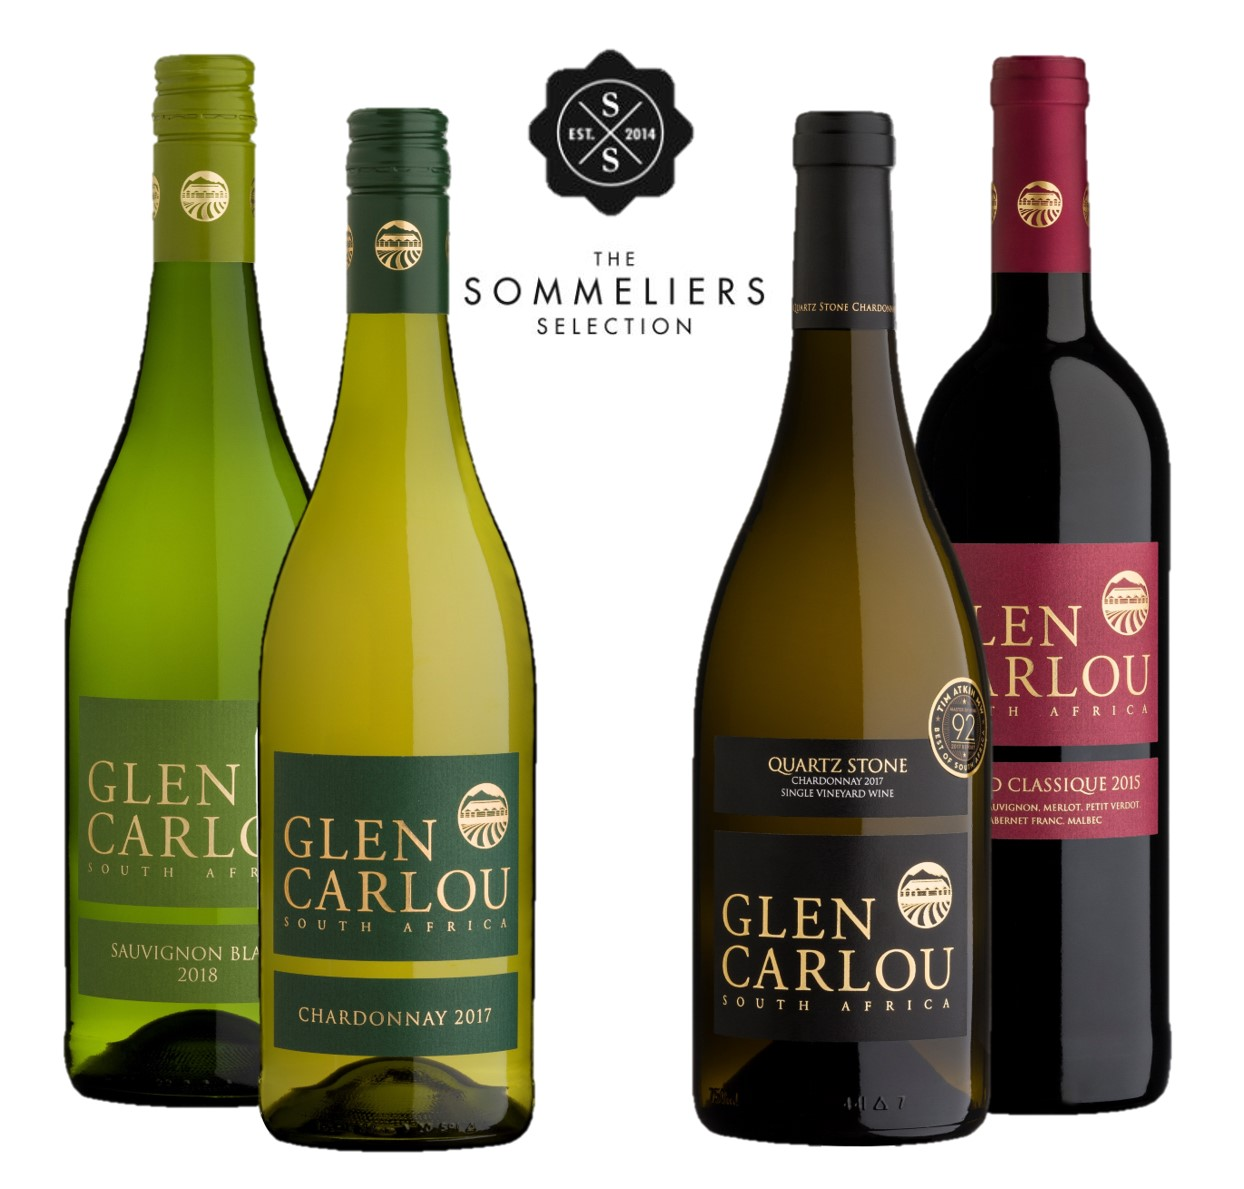 Glen Carlou has highest number of listed wines on The Sommeliers Selection 2018 Wine List photo